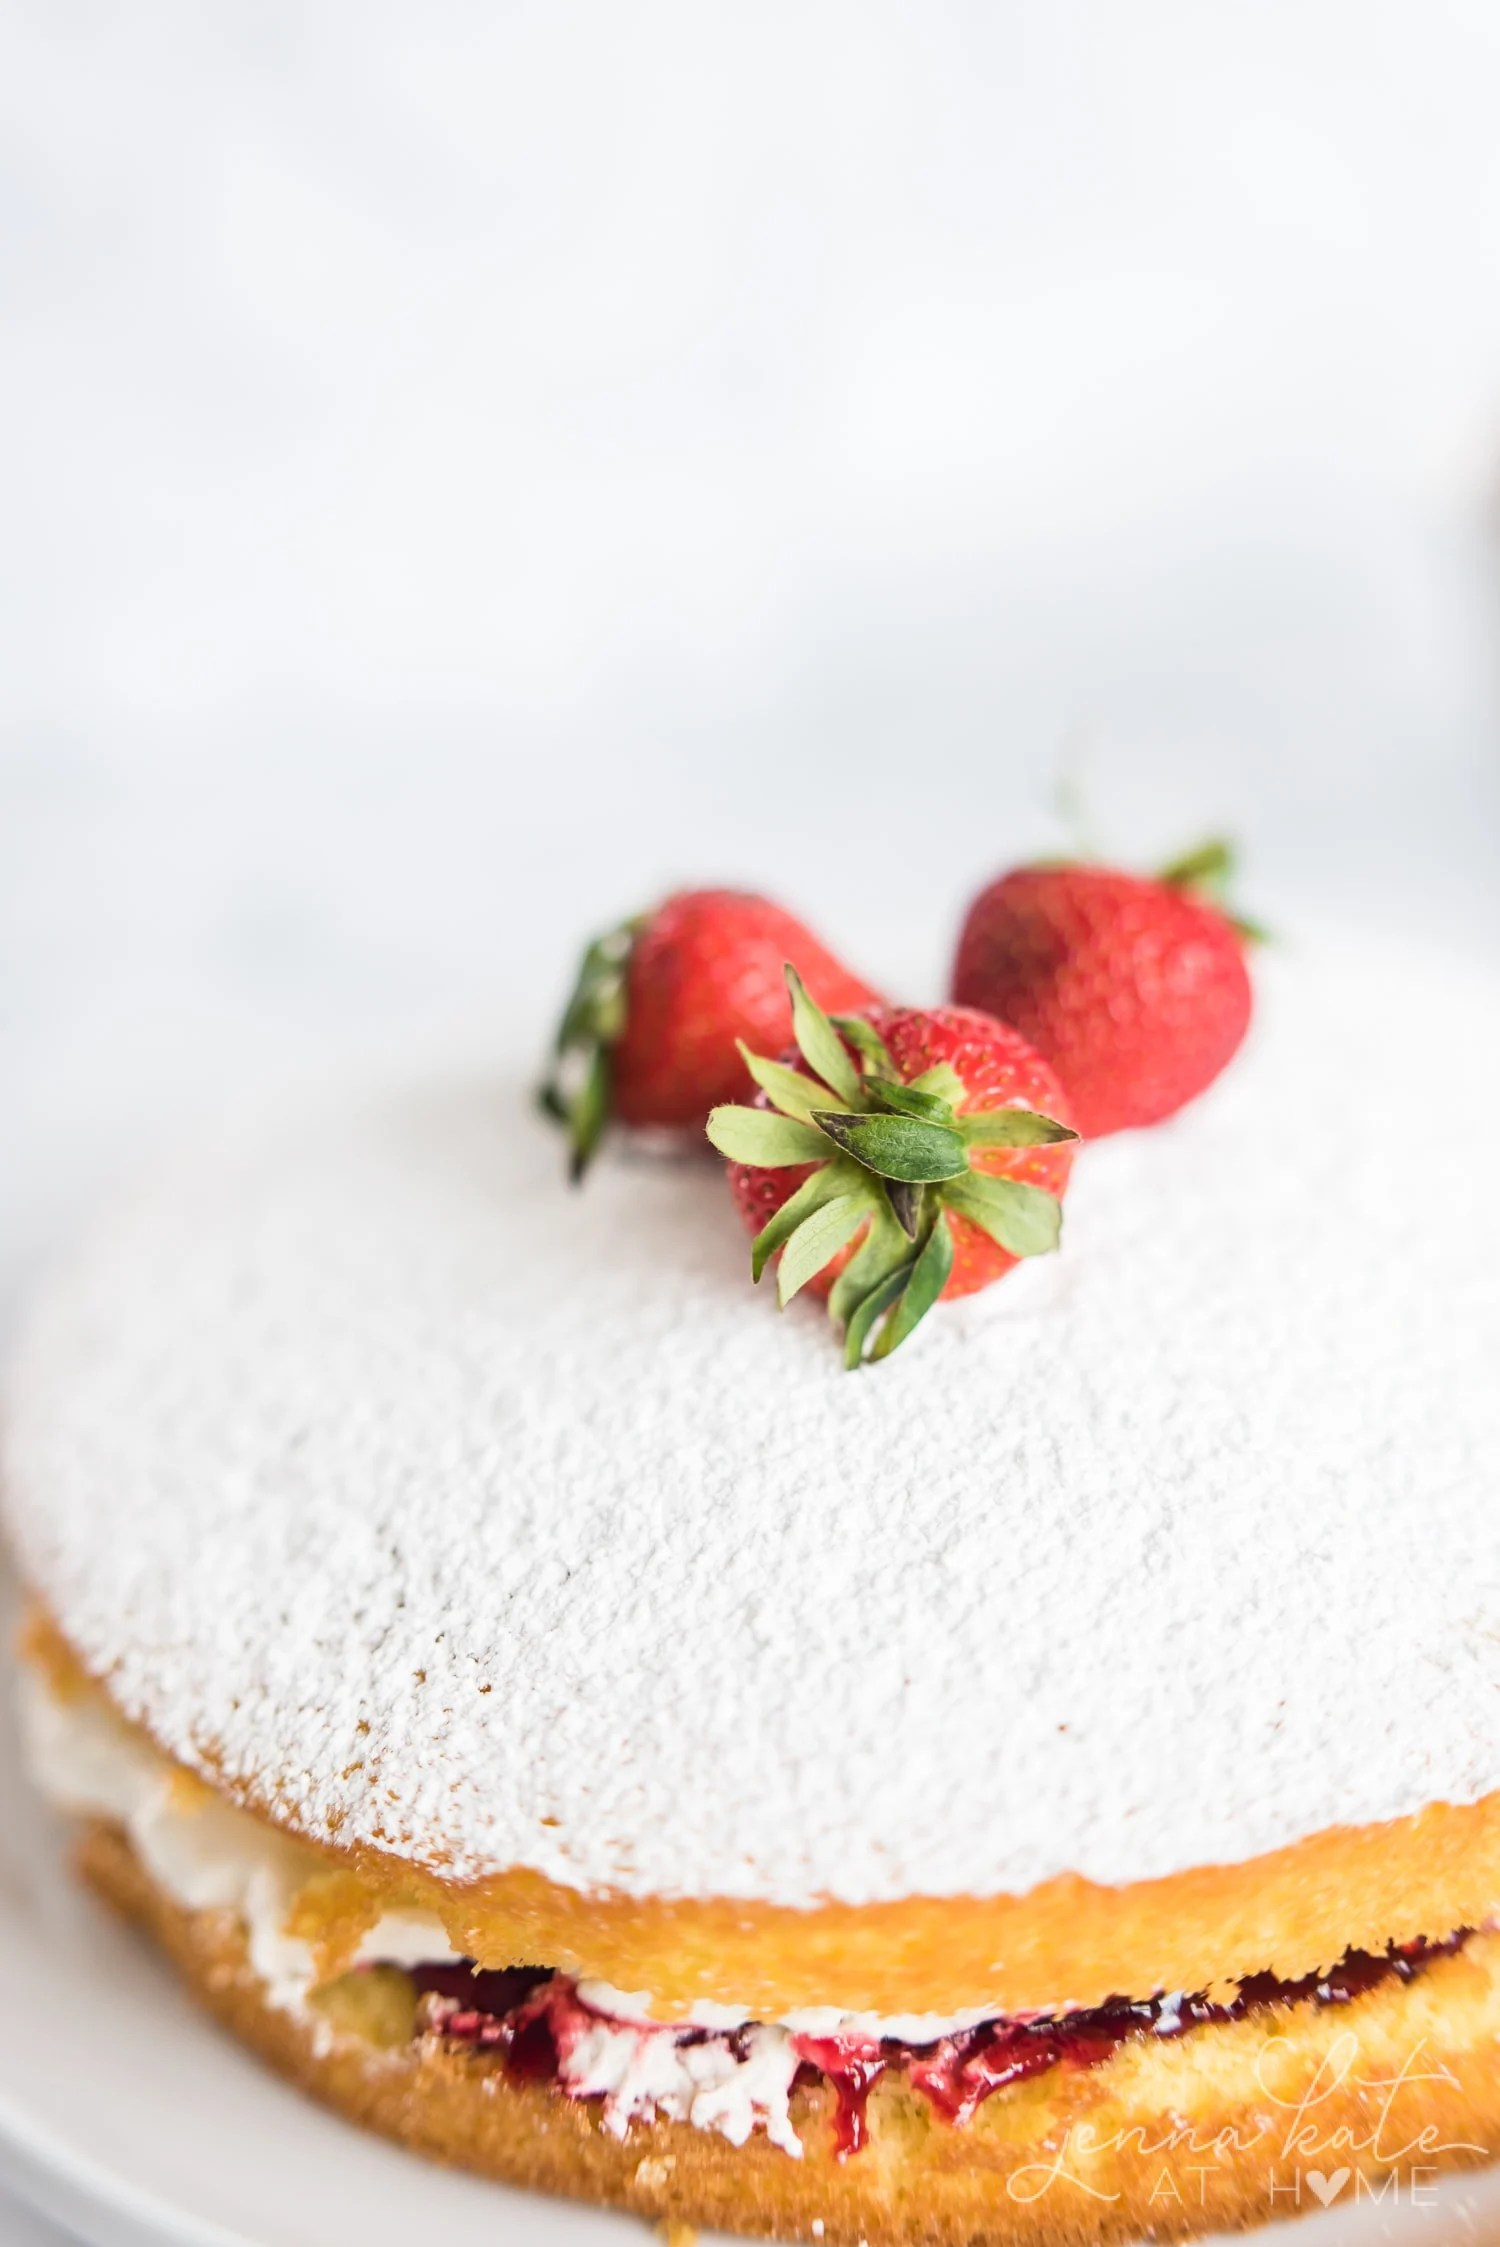 Strawberries on top of sponge cake dusted with powdered sugar